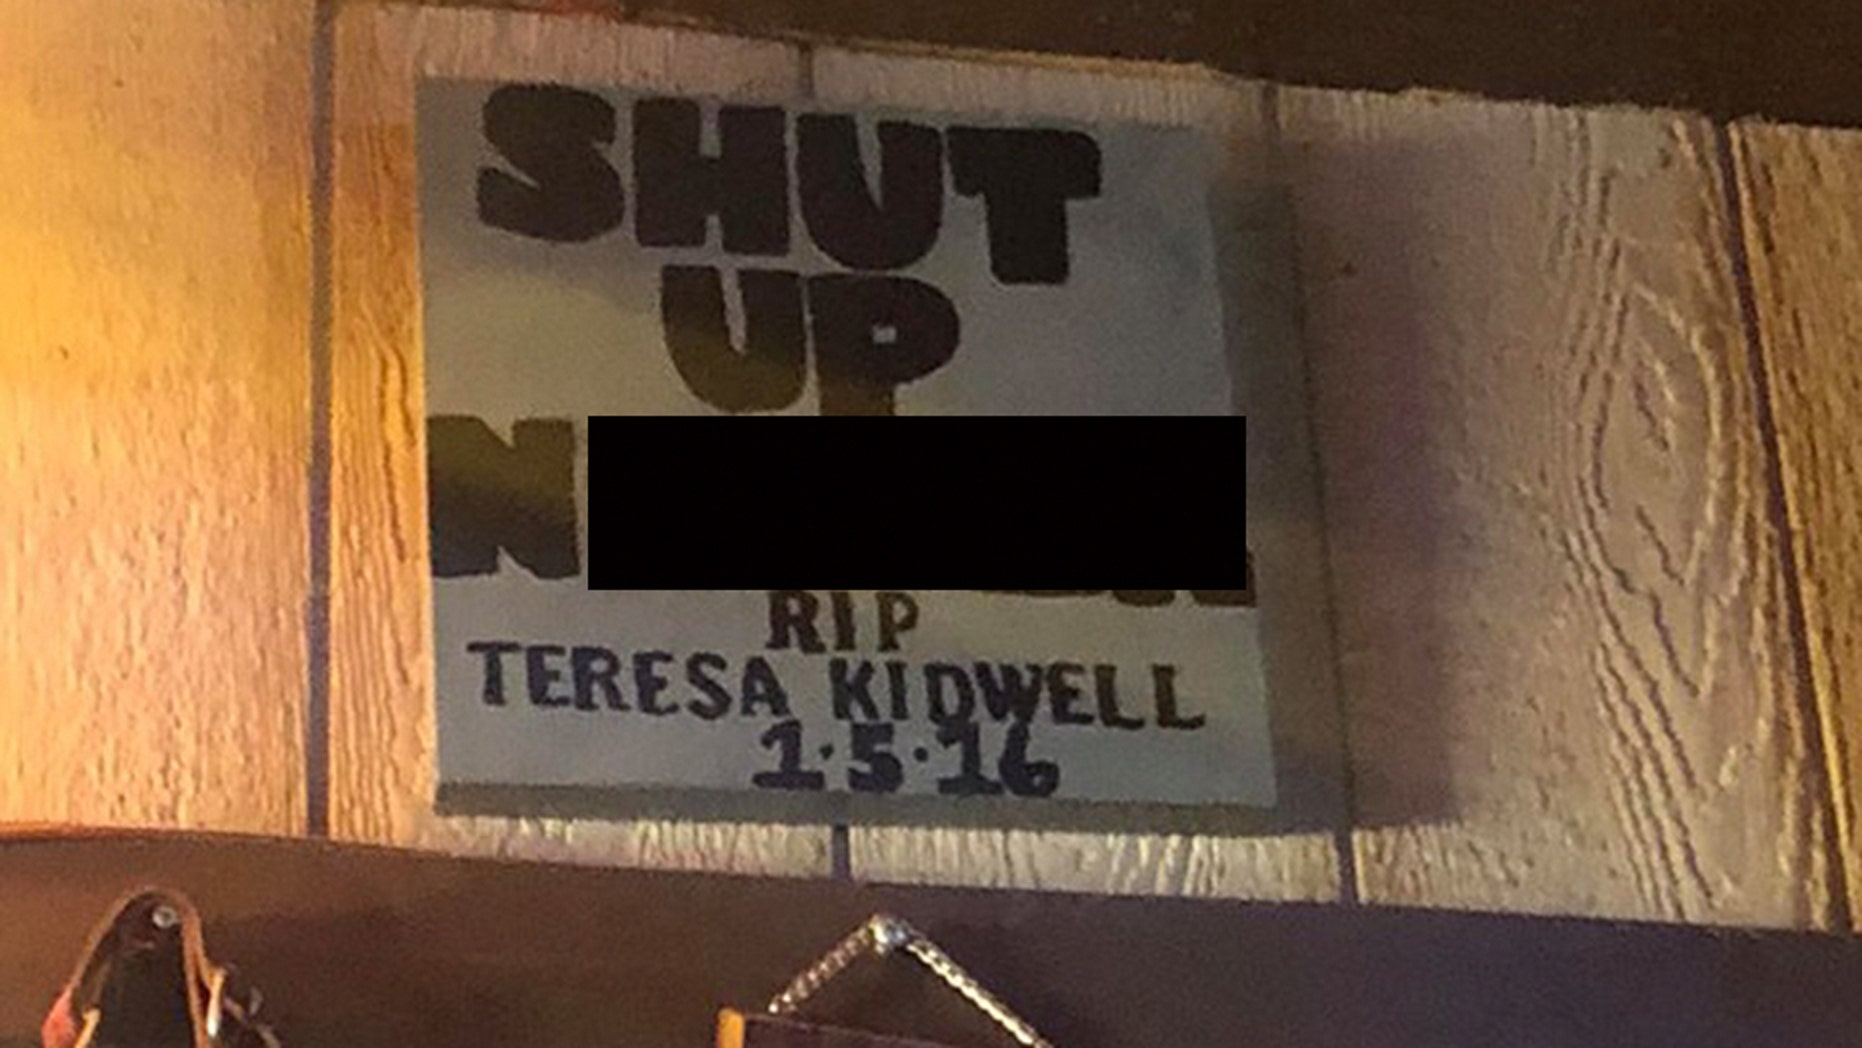 A bar in Texas has removed a sign with a racial slur after two patrons complained on social media.